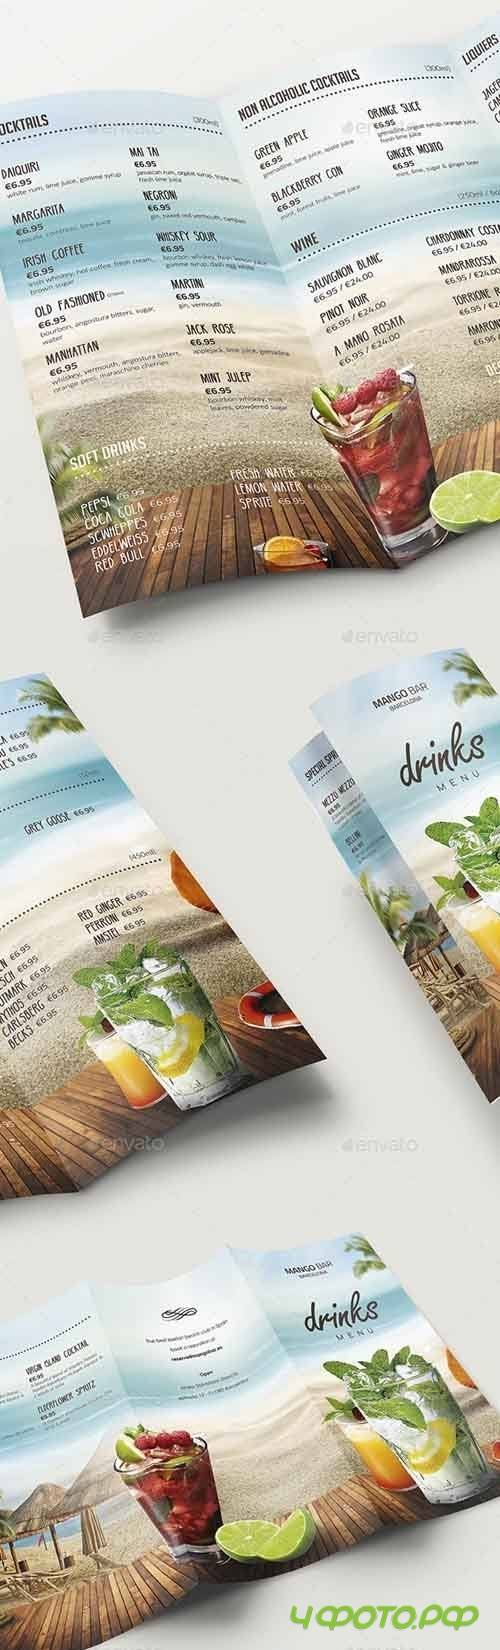 Drinks Menu Template - 17137904